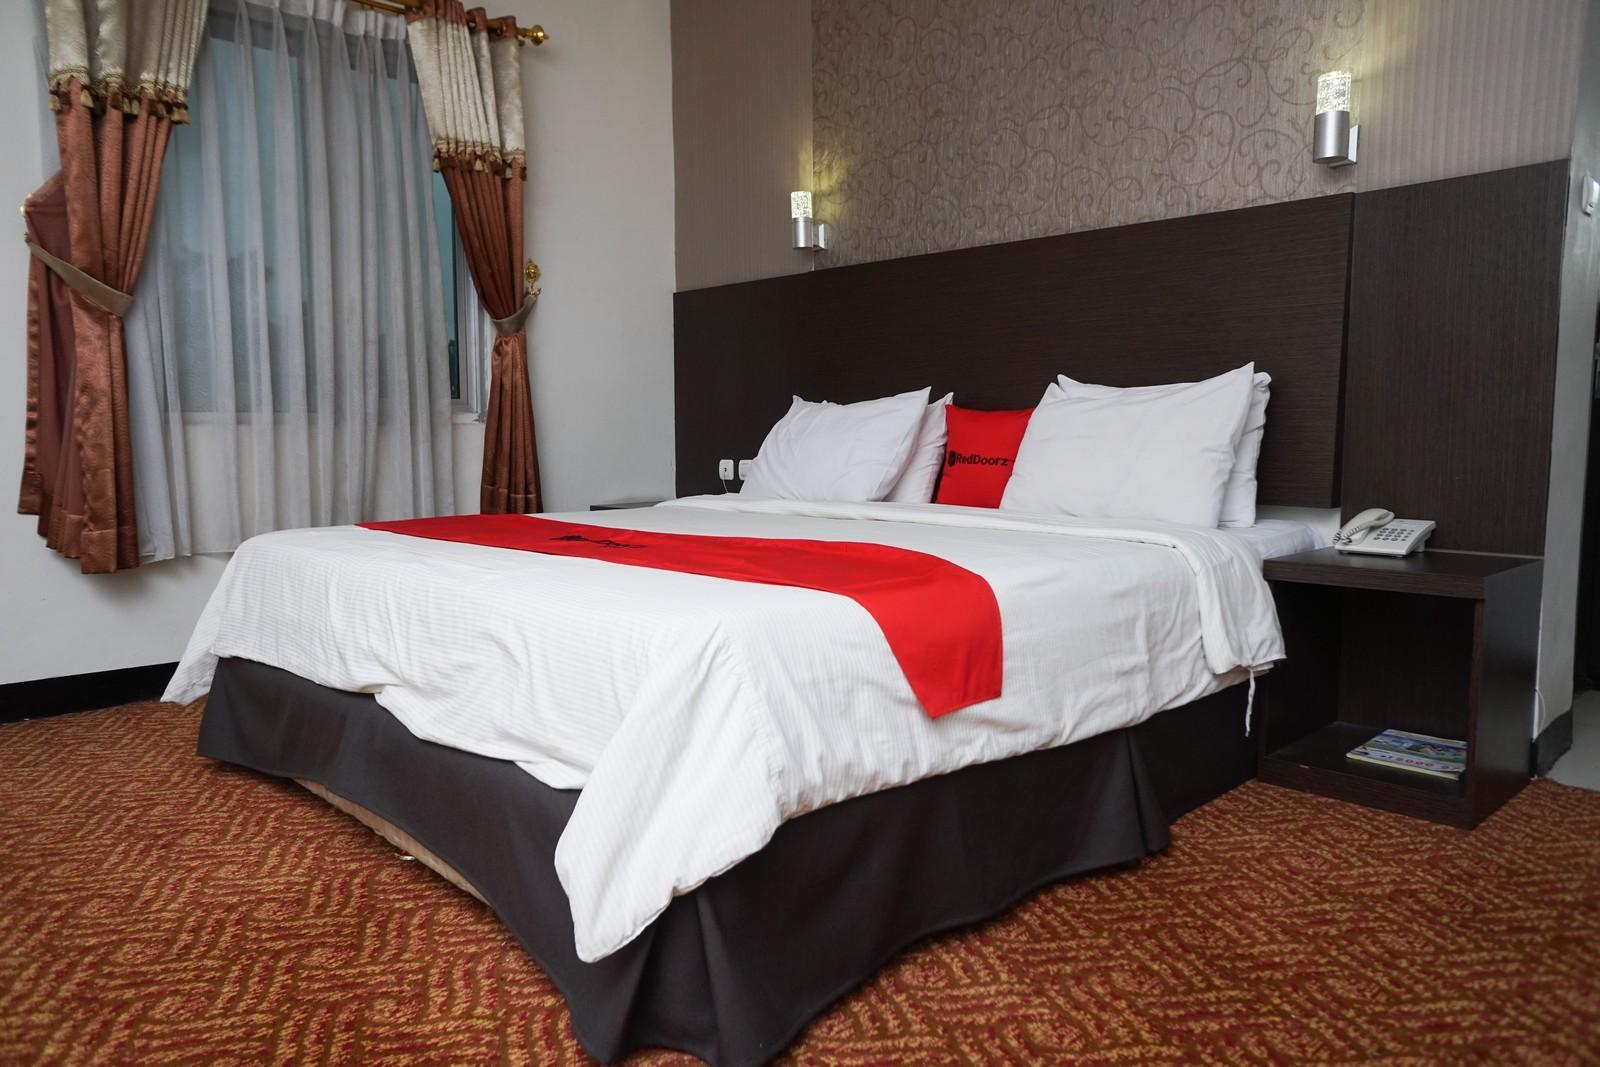 Penawaran Terbatas - Kamar Double RedDoorz (Limited Time Offer - RedDoorz Double Room)